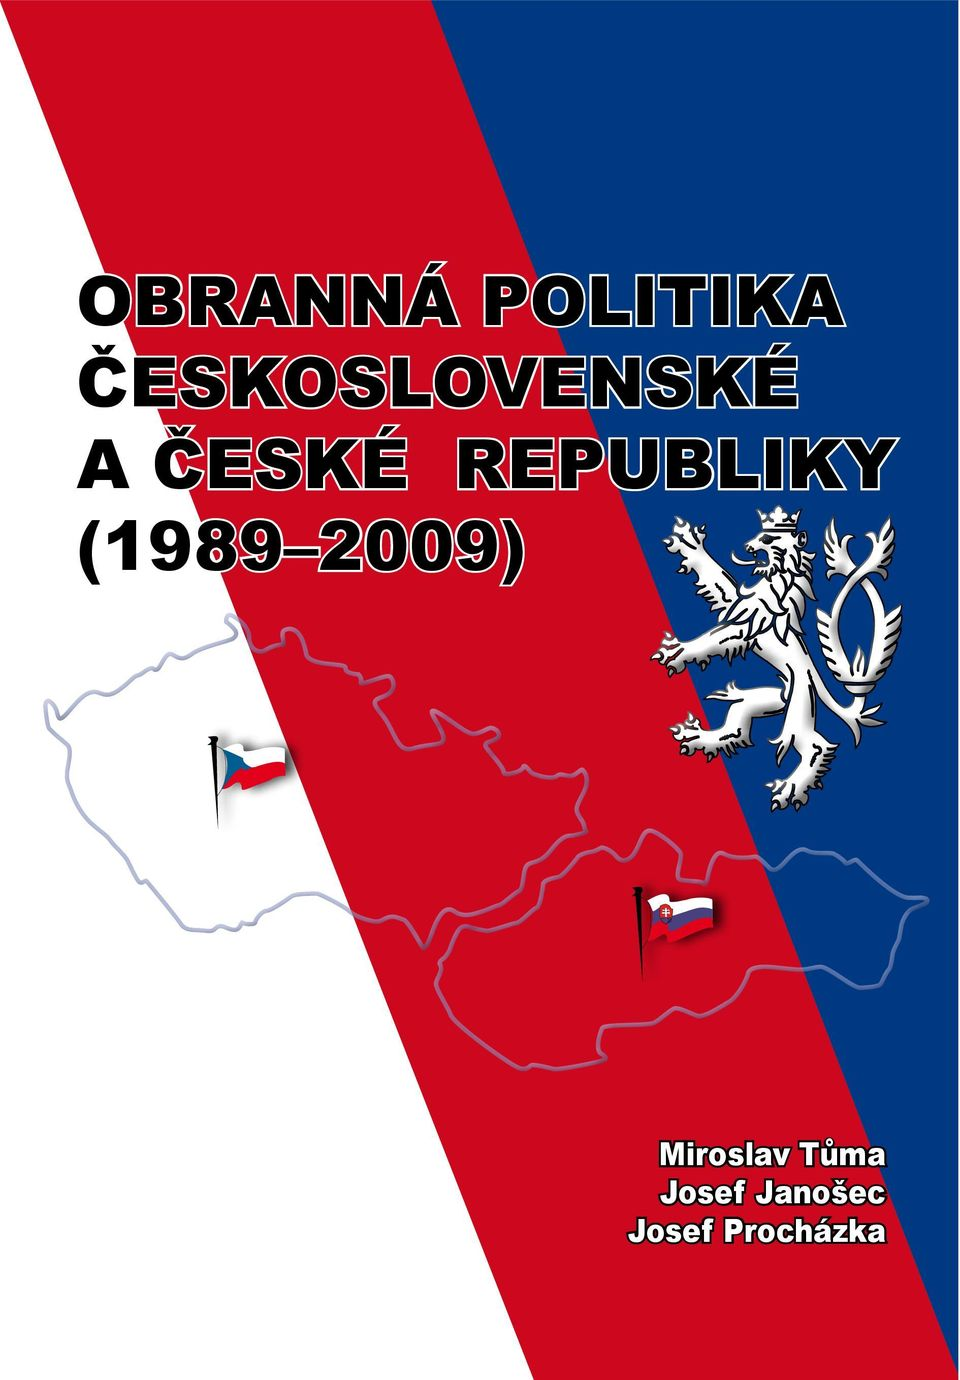 Republiky (1989 2009)